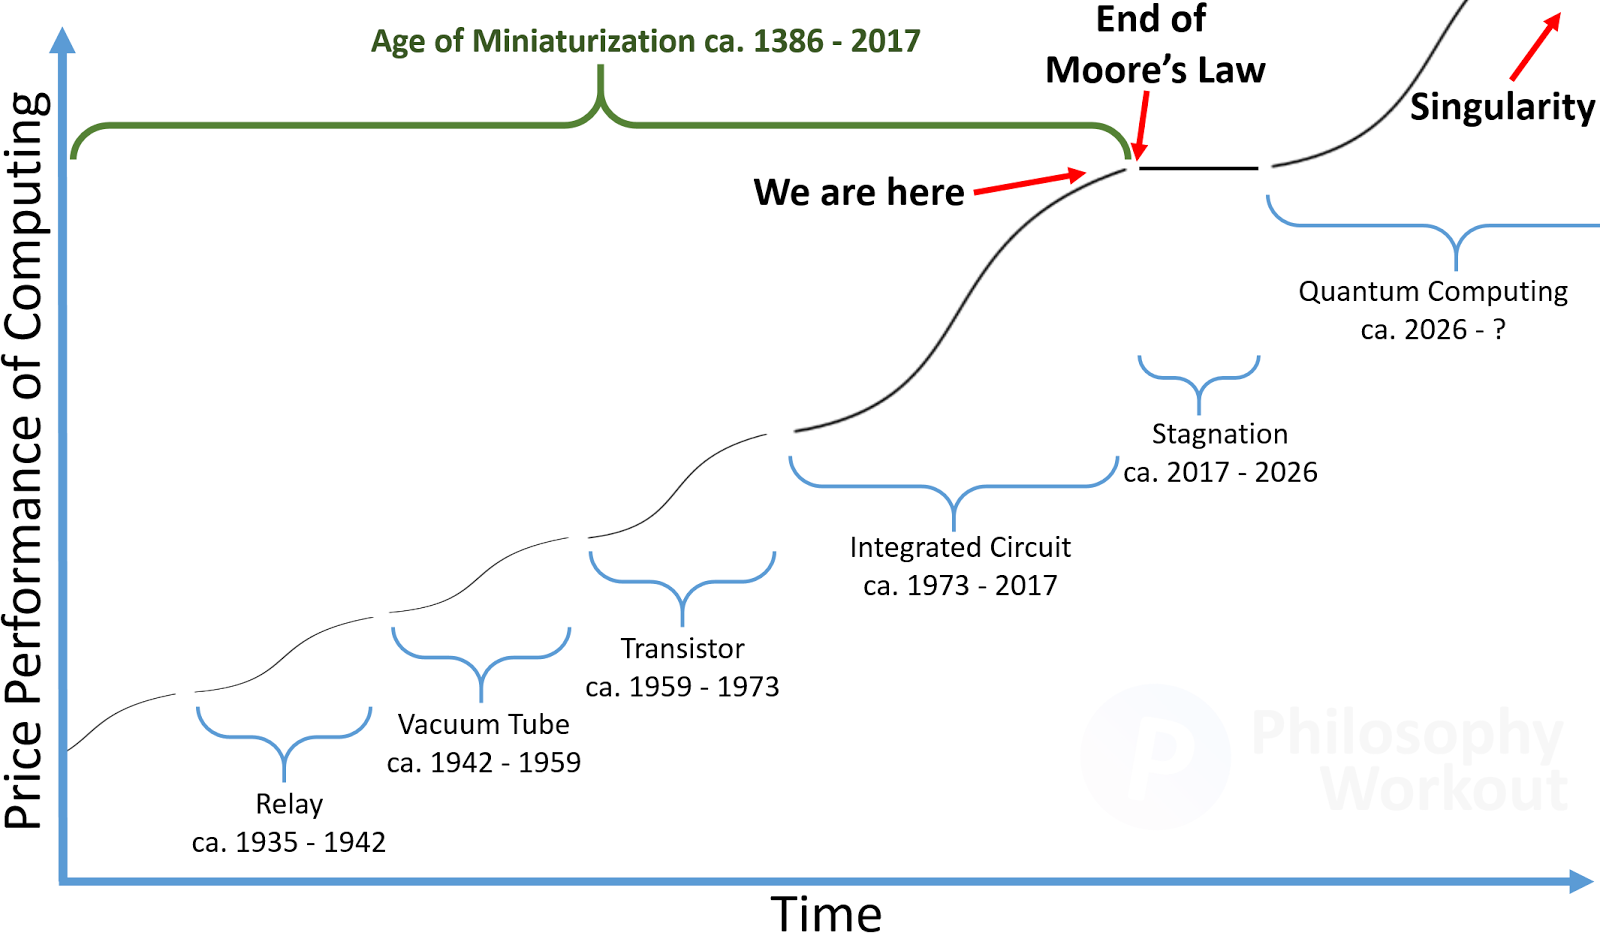 Philosophy Workout A Decade Of Economic Stagnation Looms As Moores Relay Economy Circuit Kurzweil Analyzed And Predicted The Advancement Last 35 Years Shockingly Accurate Beginning With His First Book Age Intelligent Machines